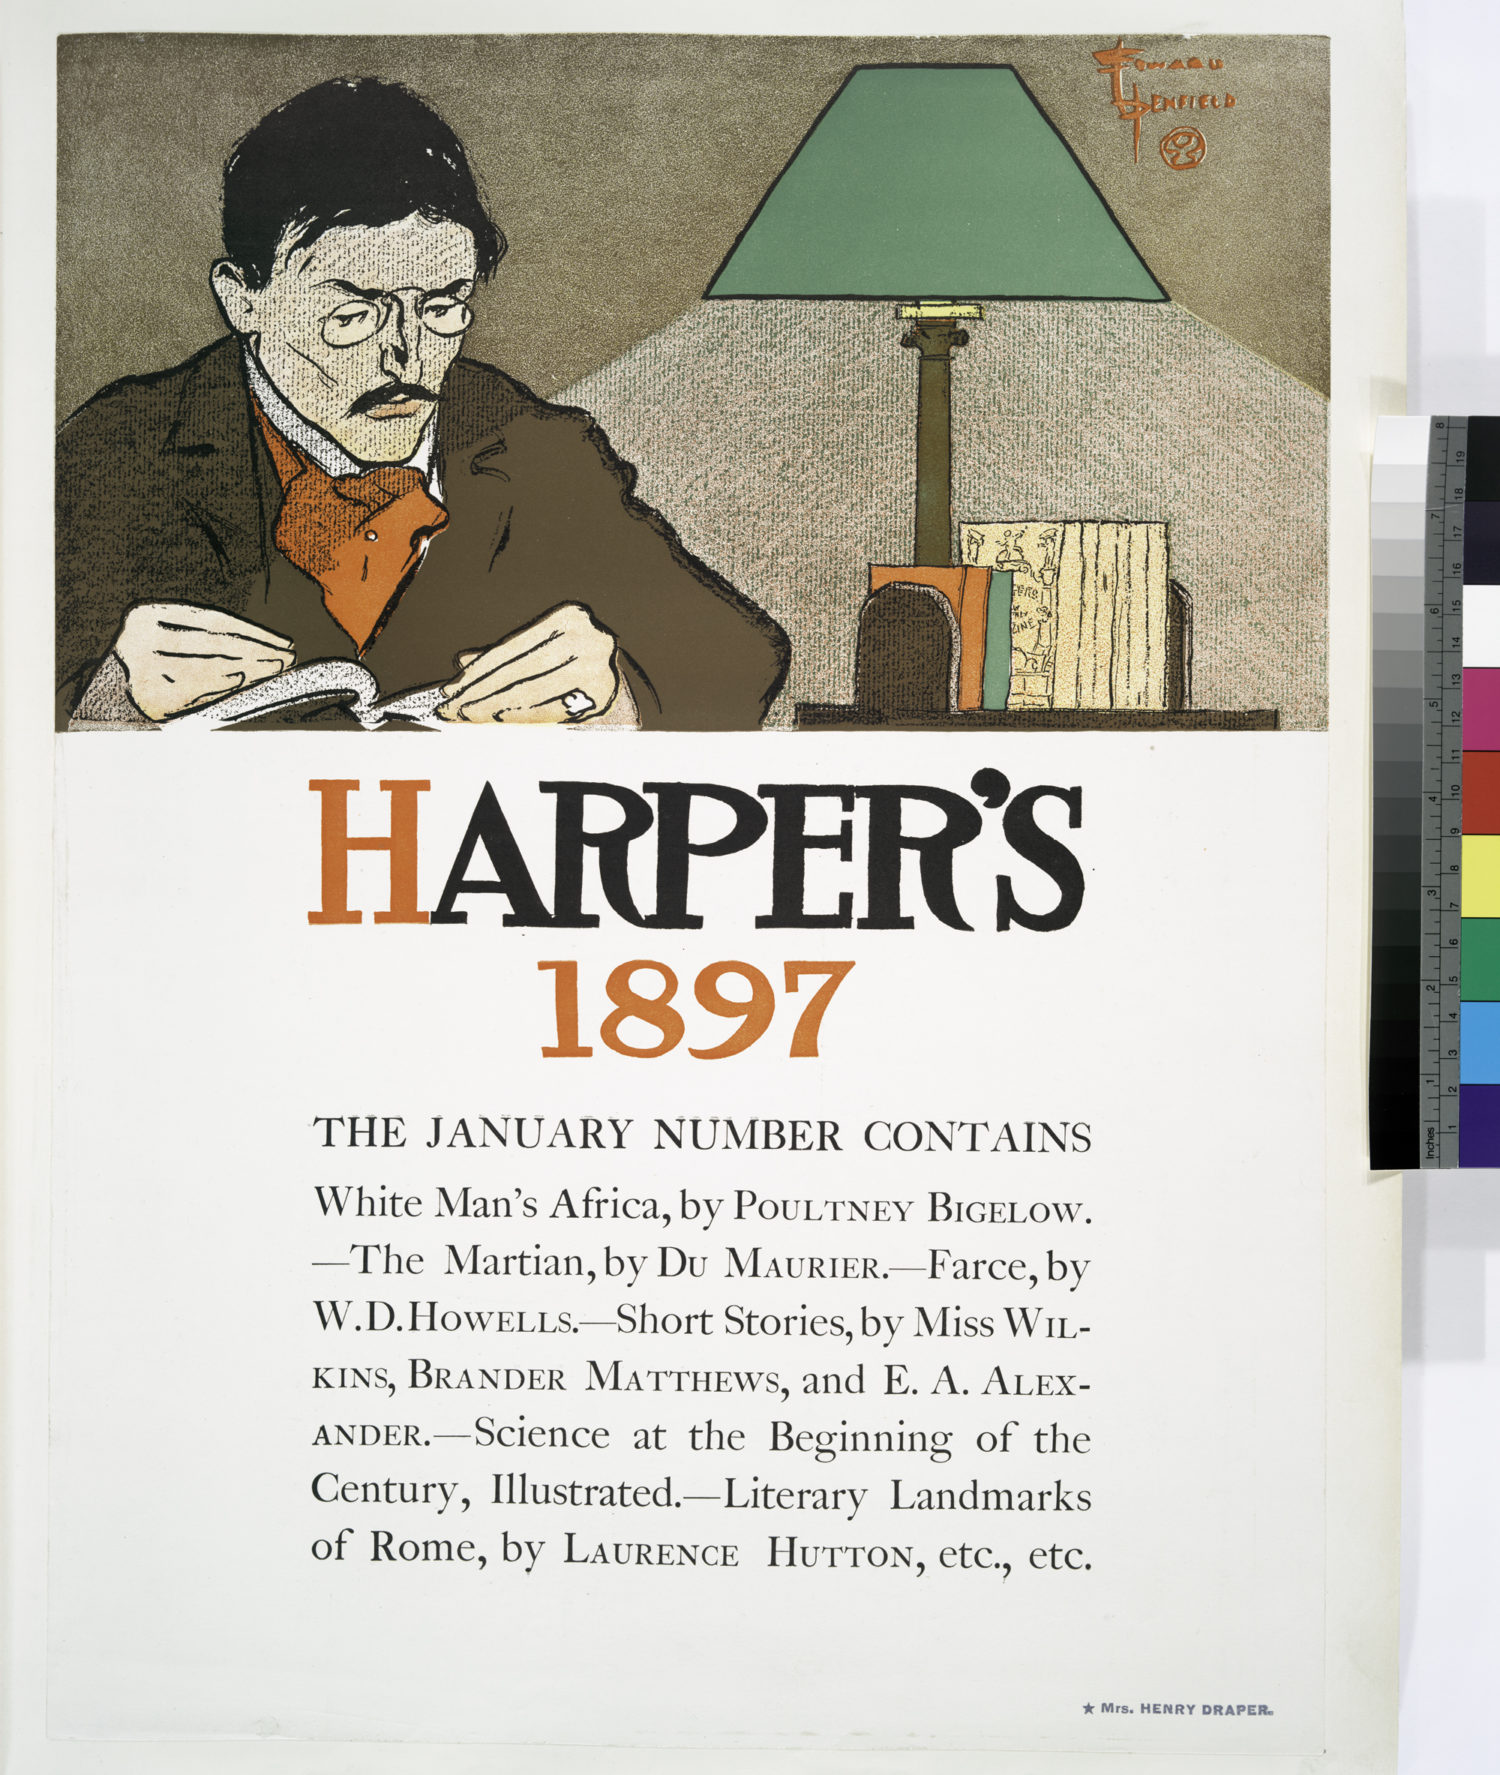 """The Miriam and Ira D. Wallach Division of Art, Prints and Photographs: Art & Architecture Collection, The New York Public Library. """"Harper's 1897, The January Number Contains White Man's Africa, by Poultney Bigelow. - The Martian , by Du Maurier, - Farce, by W. D. Howells, - Short Stories, by Miss Wlkins, Brander Matthews, and E. A. Alexander, - Science at the Beginning of the ..."""" The New York Public Library Digital Collections. 1890 - 1907. http://digitalcollections.nypl.org/items/510d47dc-488c-a3d9-e040-e00a18064a99"""